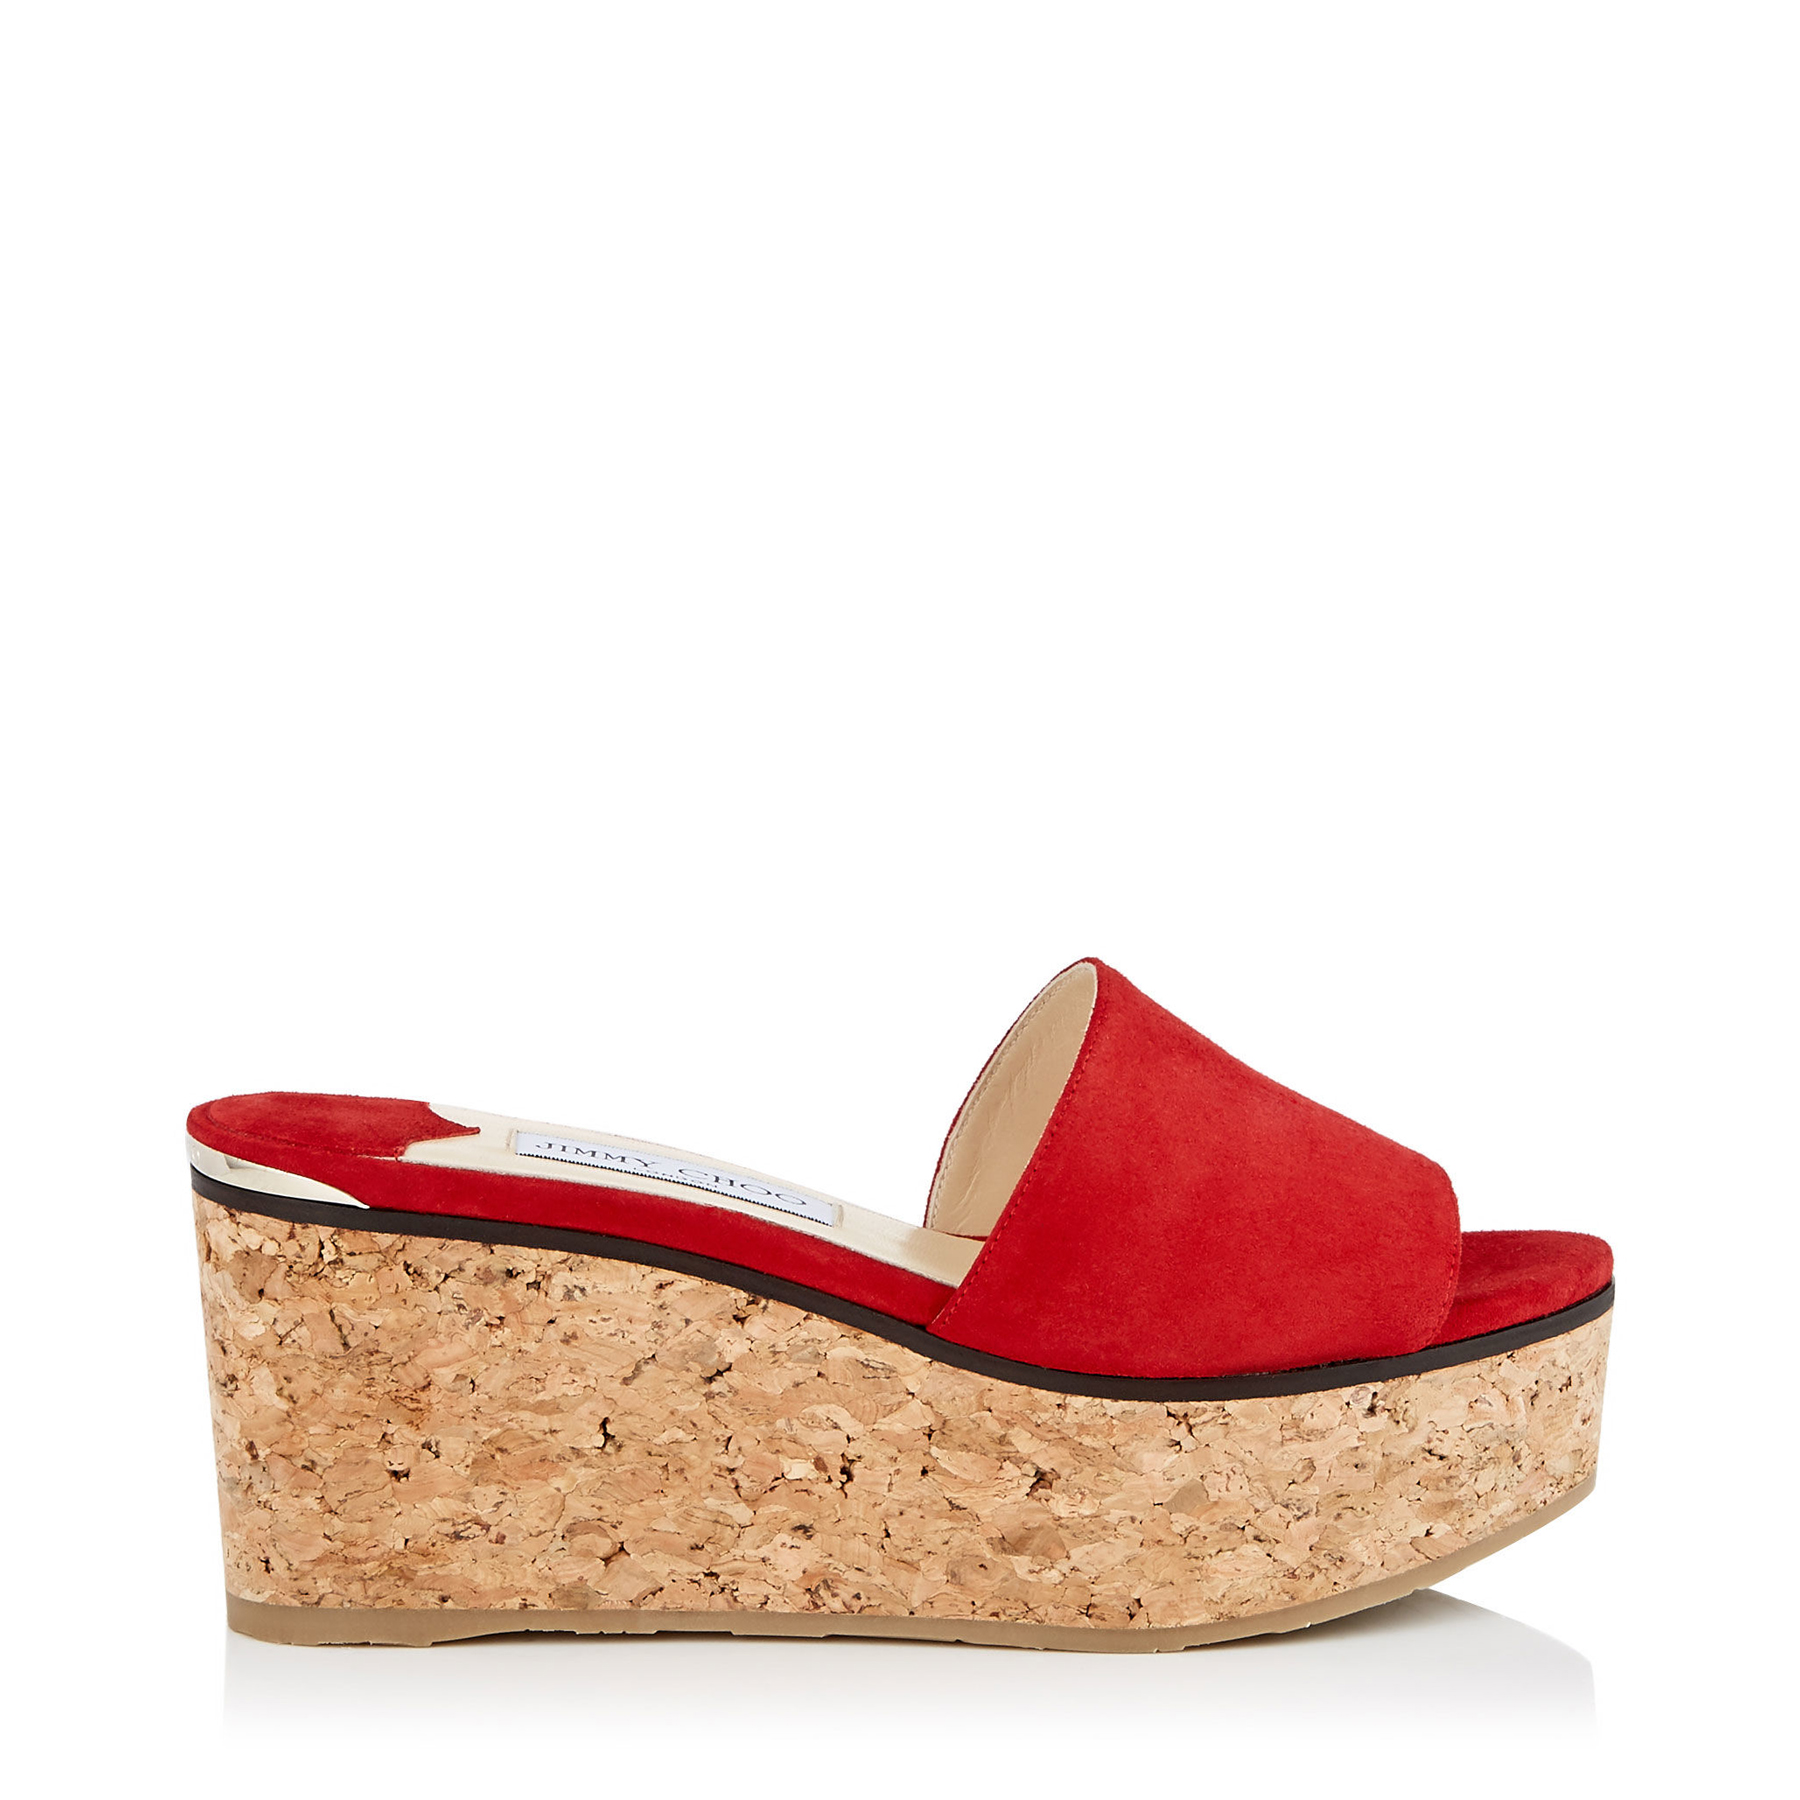 DEEDEE 80 Red Suede Sandal Wedges by Jimmy Choo